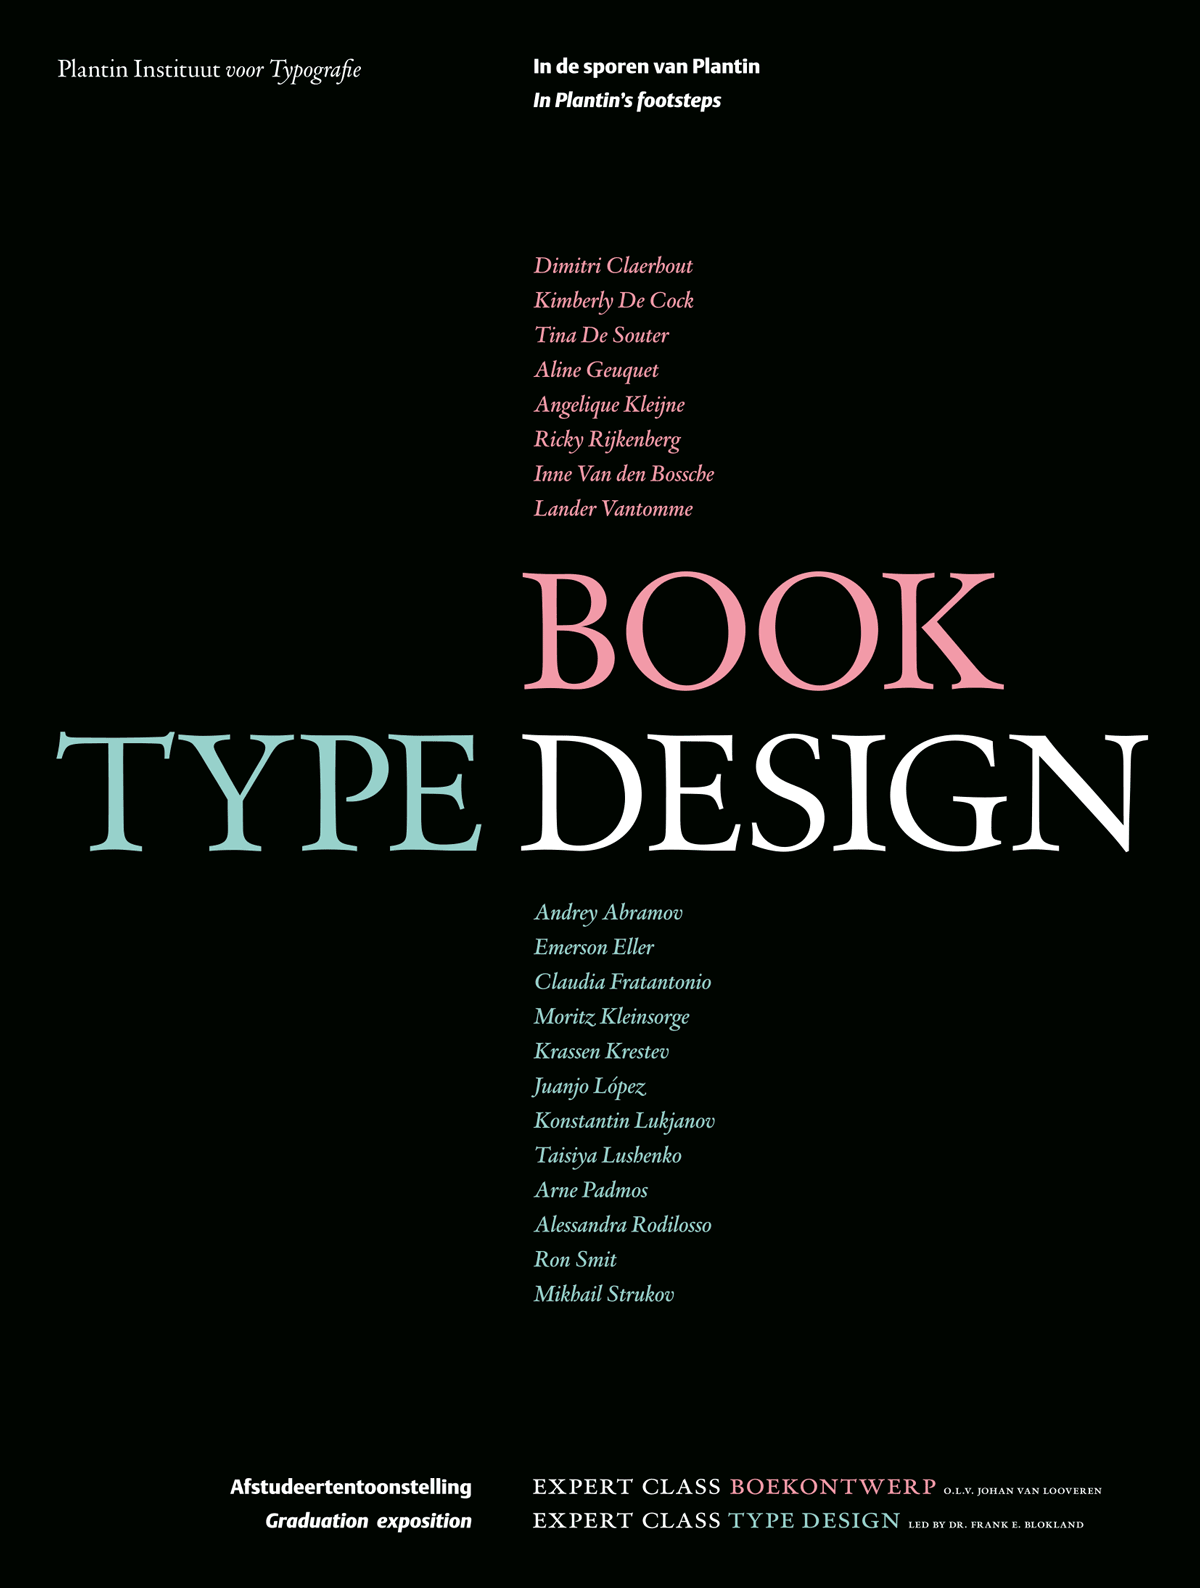 Book/Type design. In de sporen van Plantin